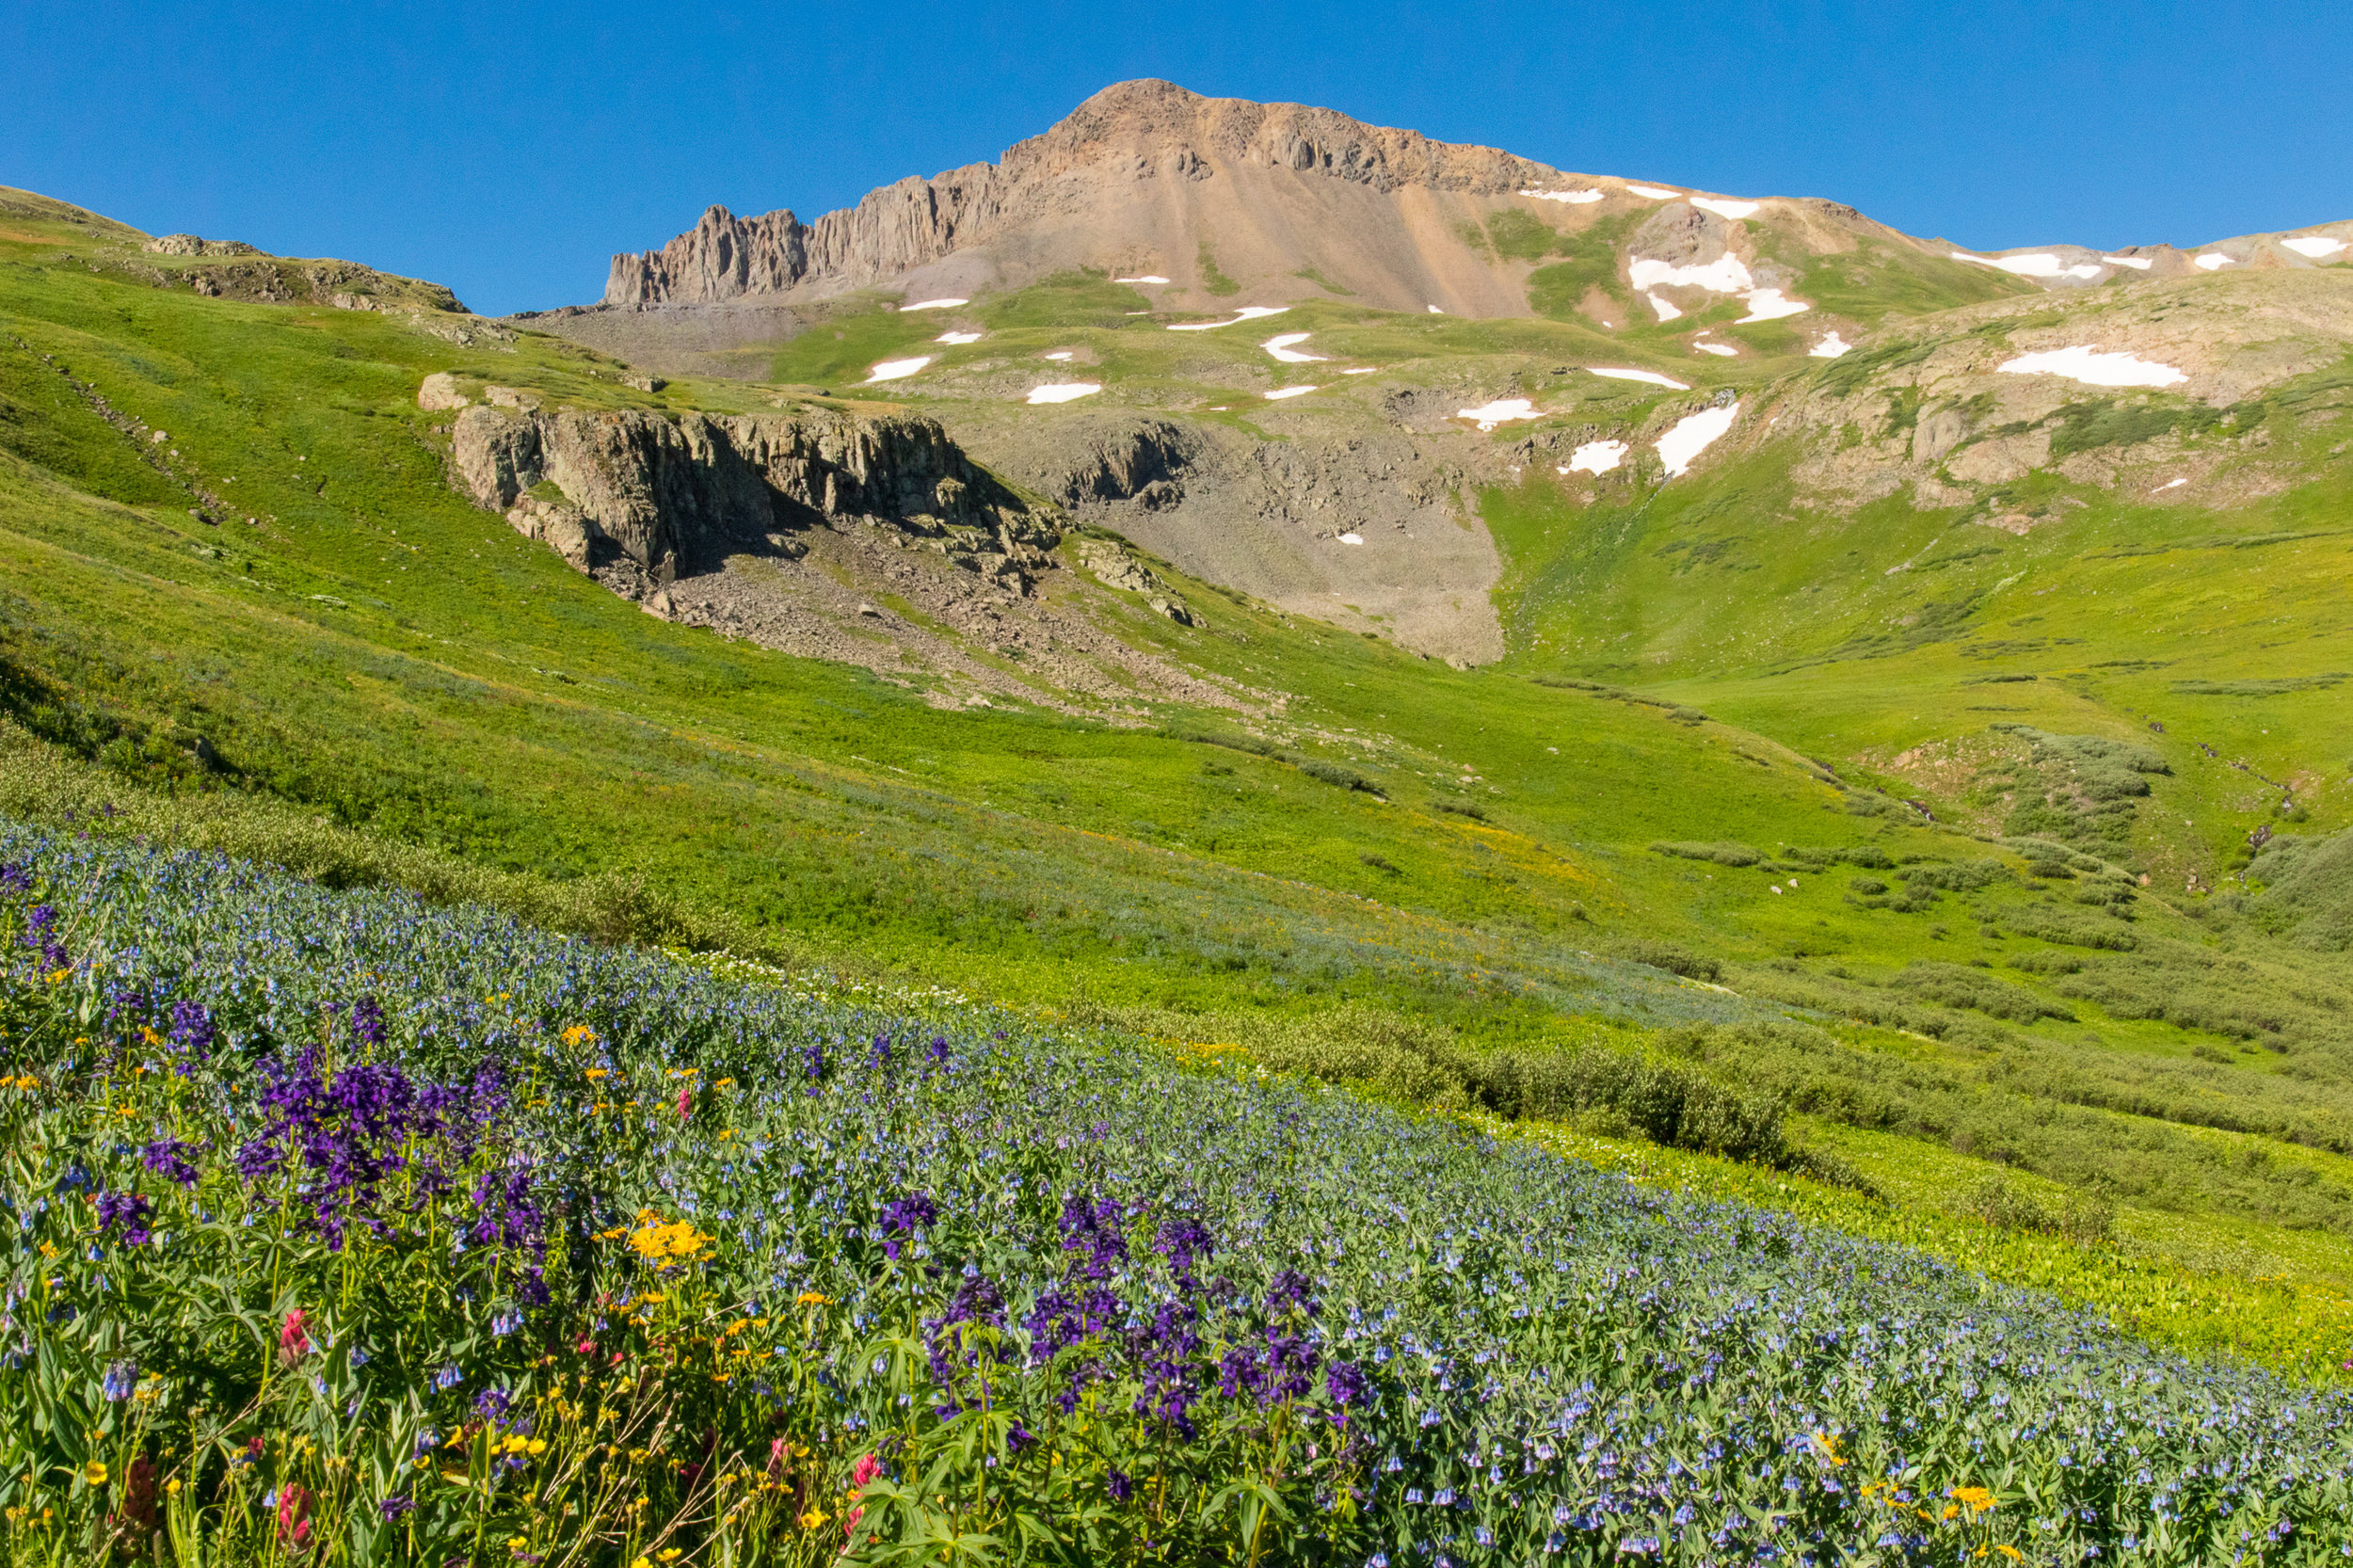 Candy Mountain with larkspur and bluebells